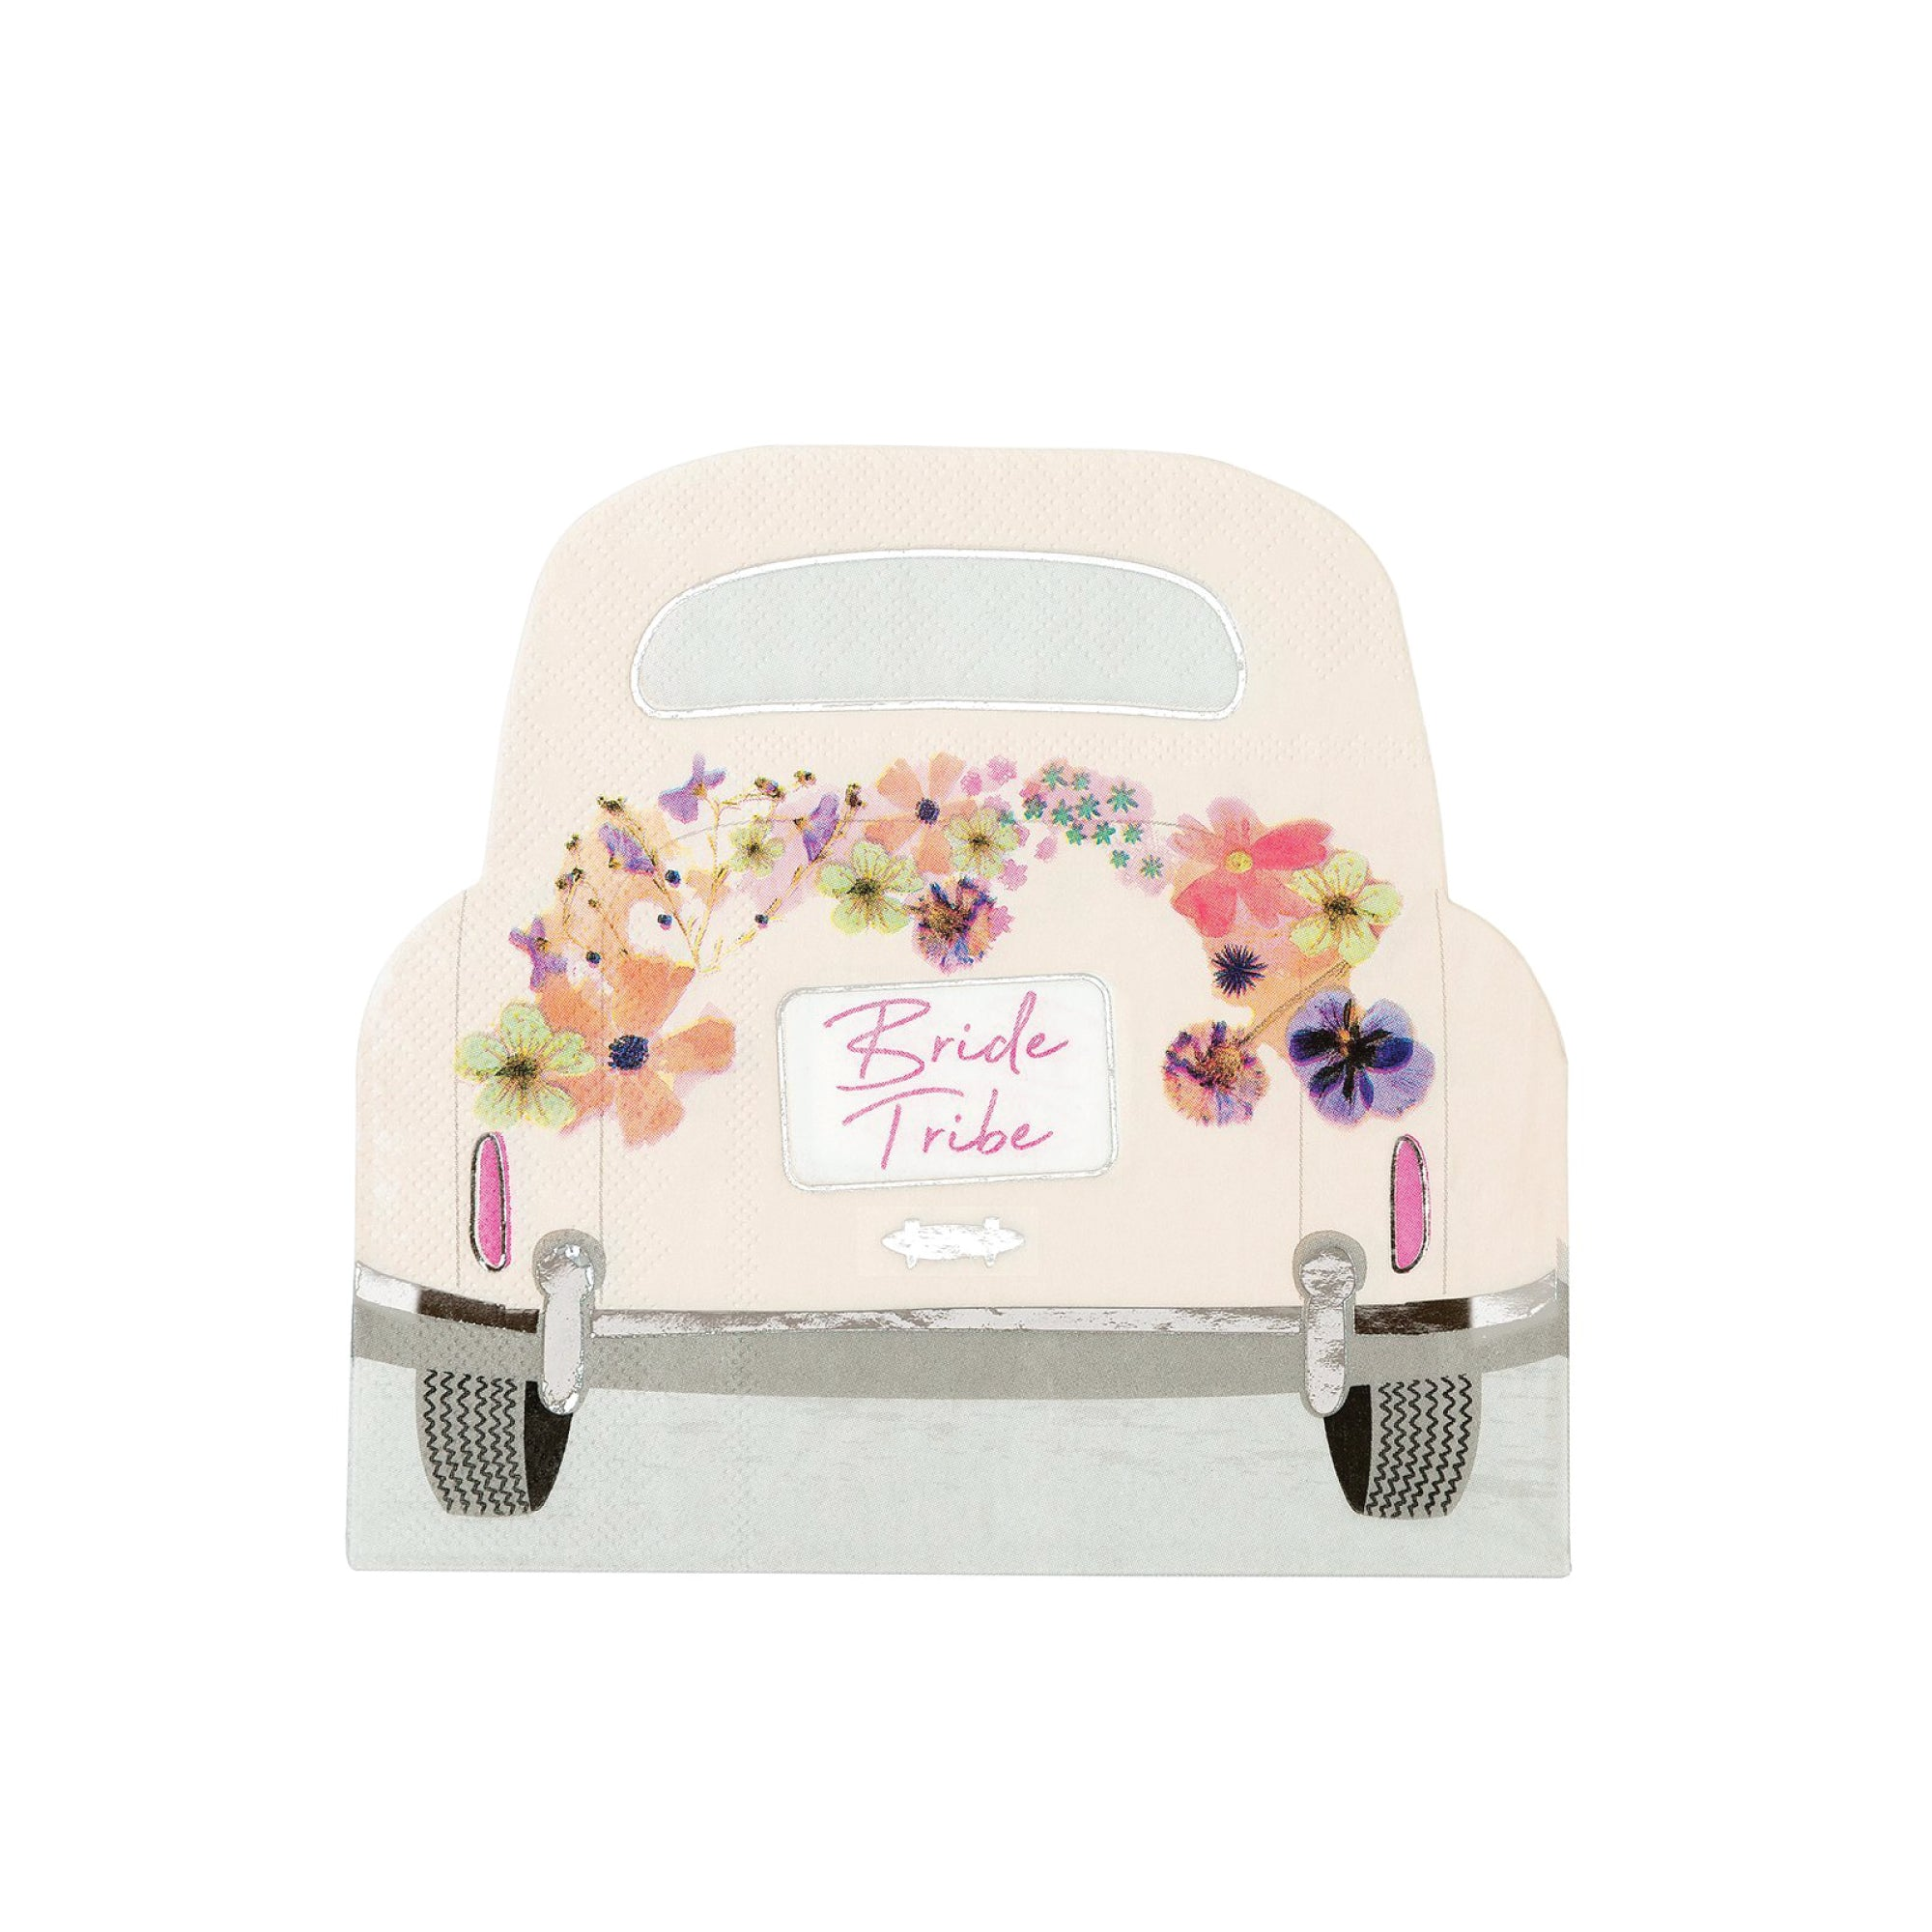 Blossom 'Bride Tribe' Car Shaped Napkins | The Party Darling